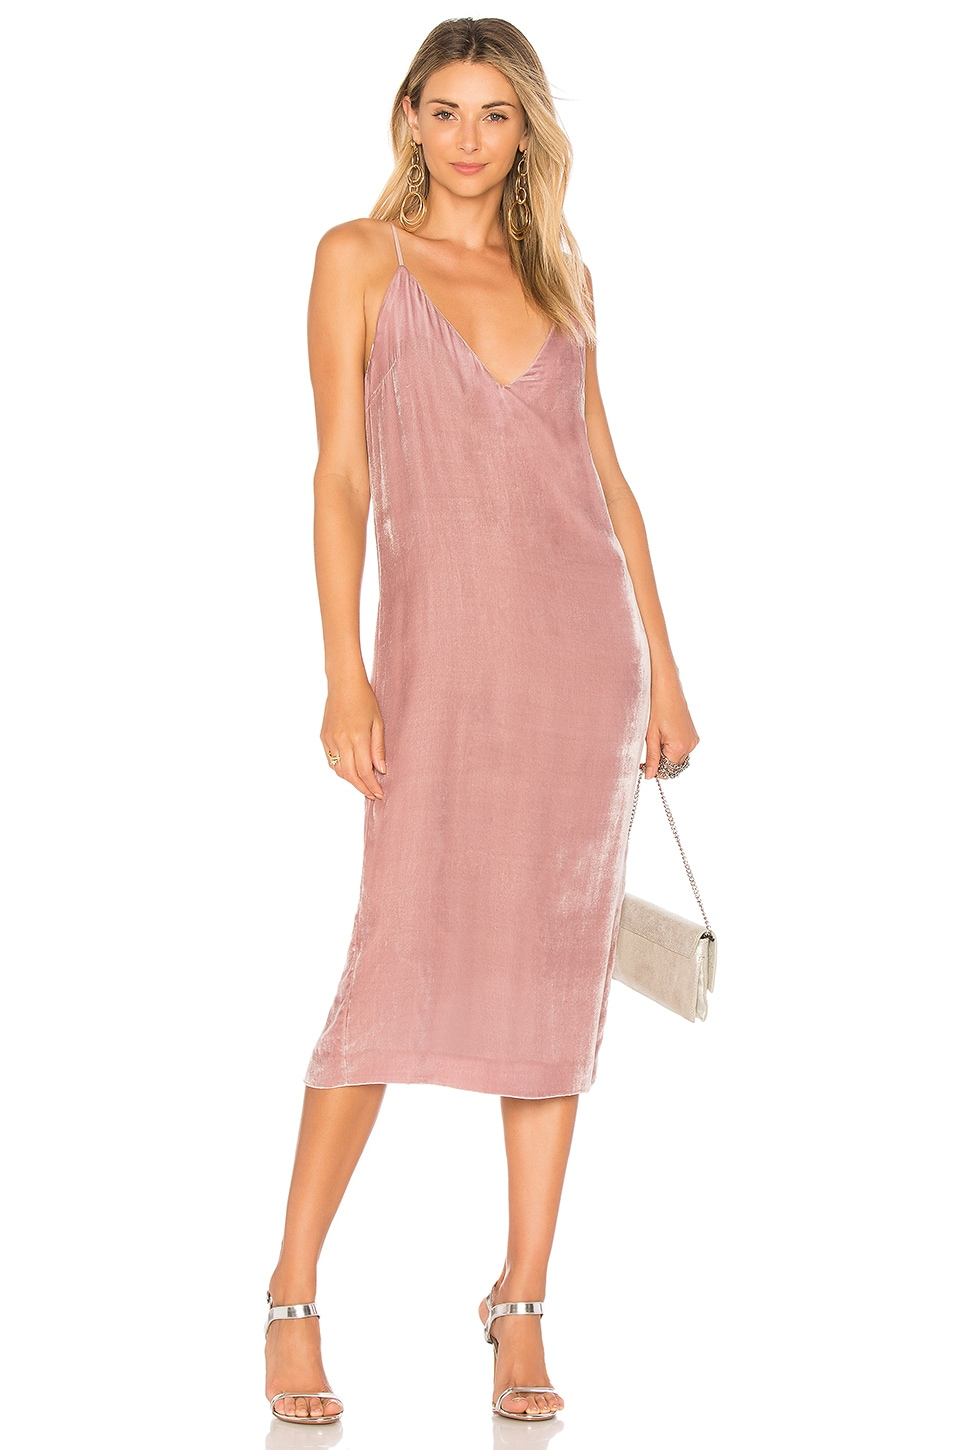 Mara Hoffman Georgia Slip Dress in Mauve